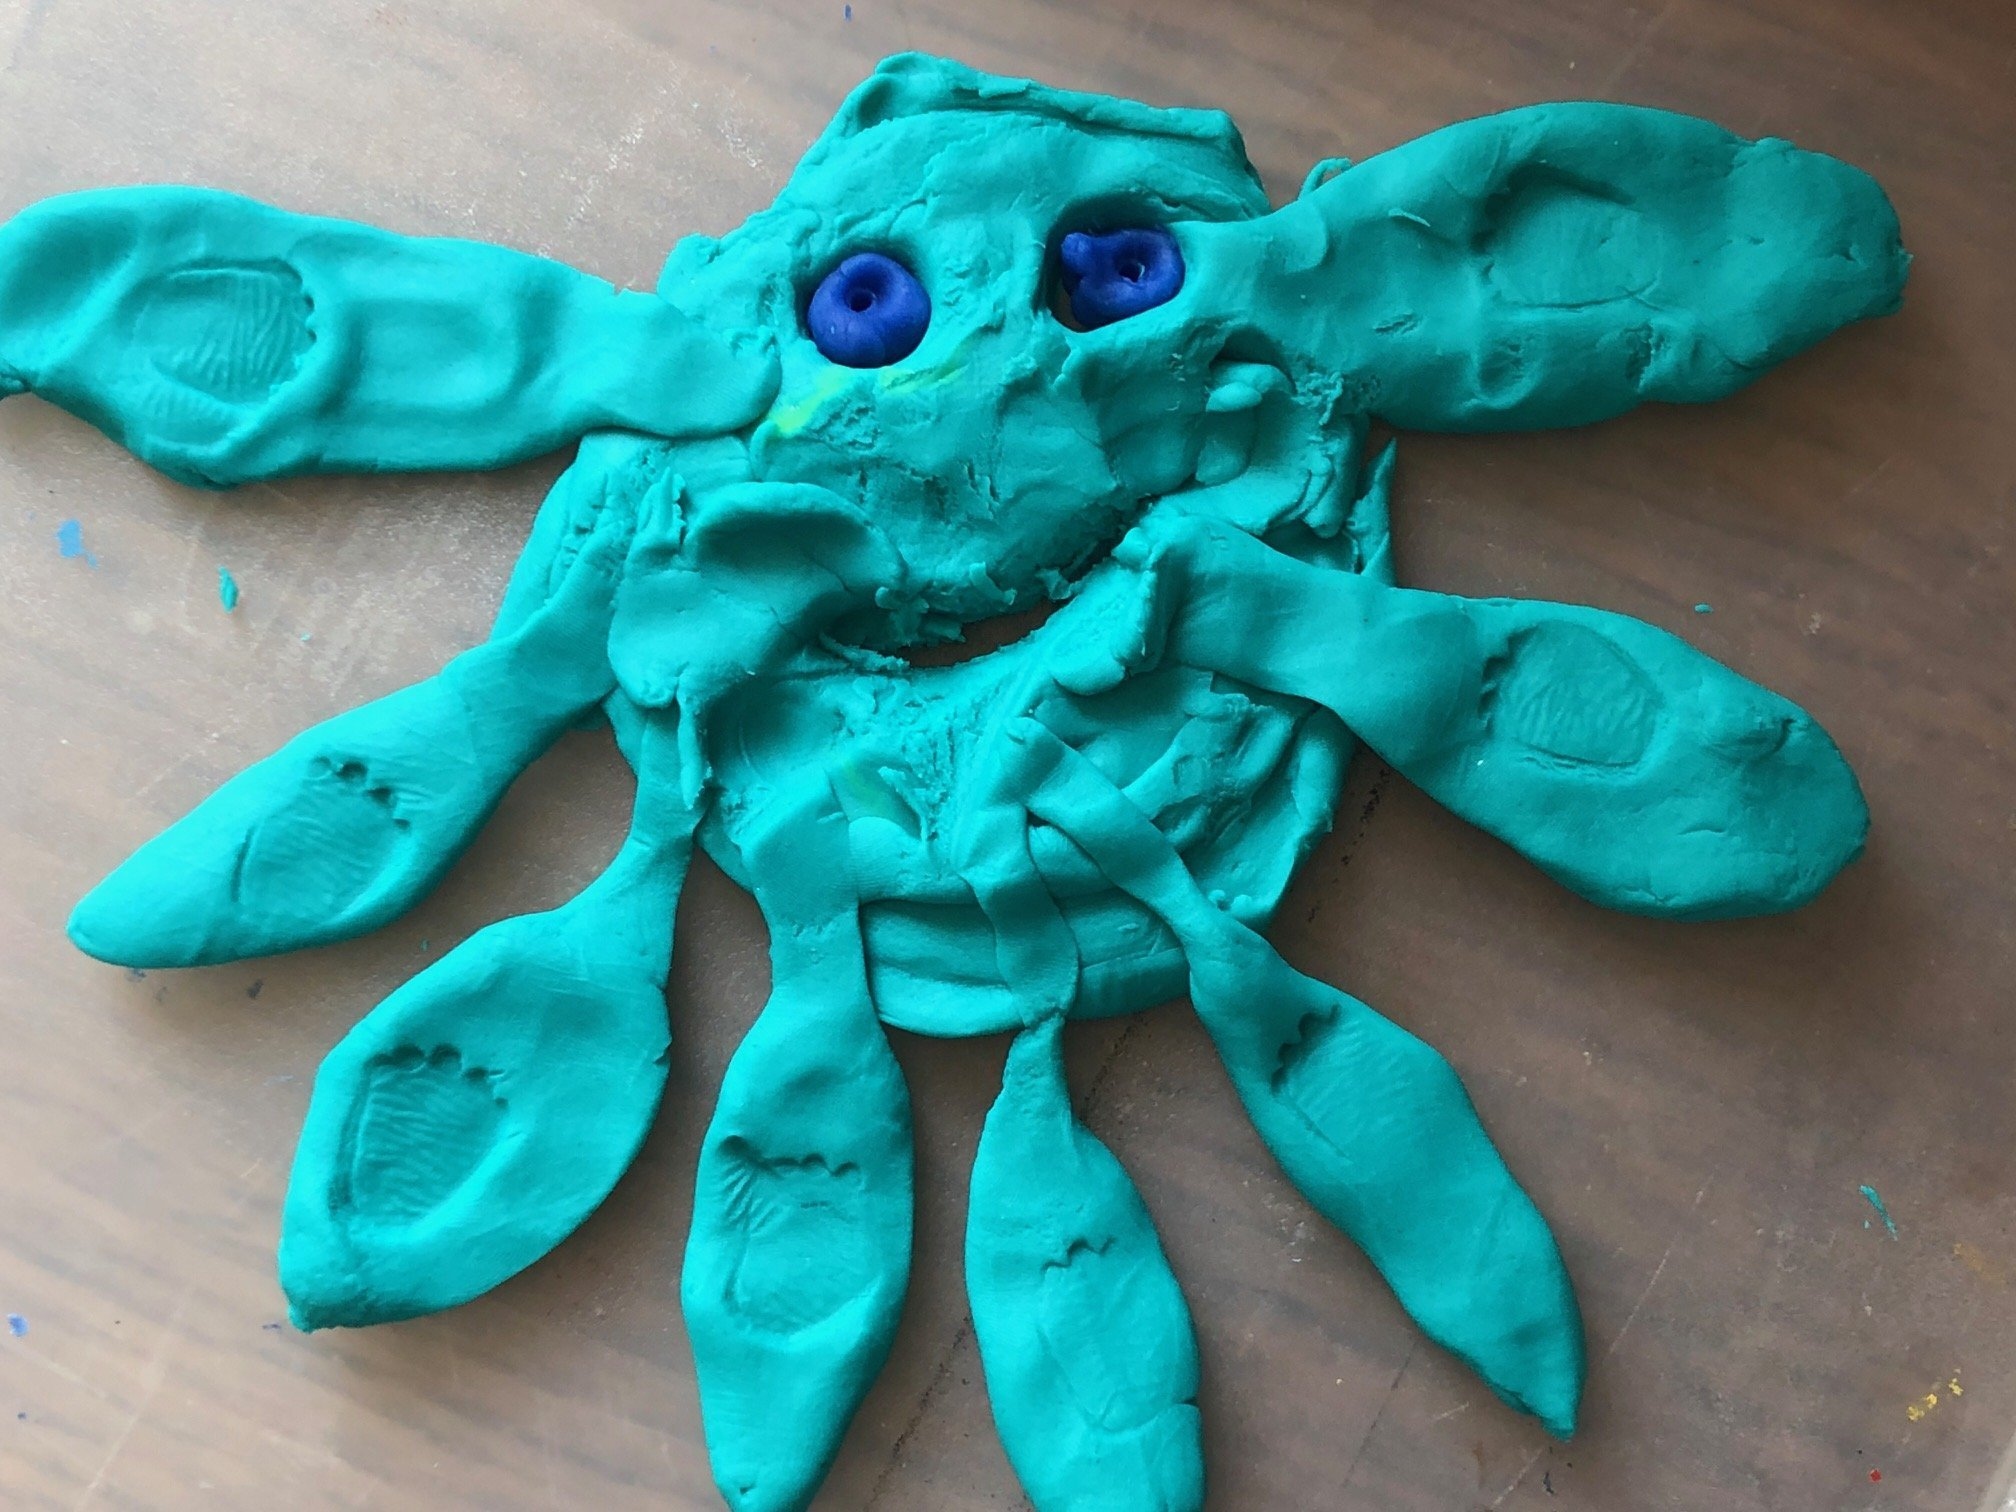 'Drawing' with Play Dough